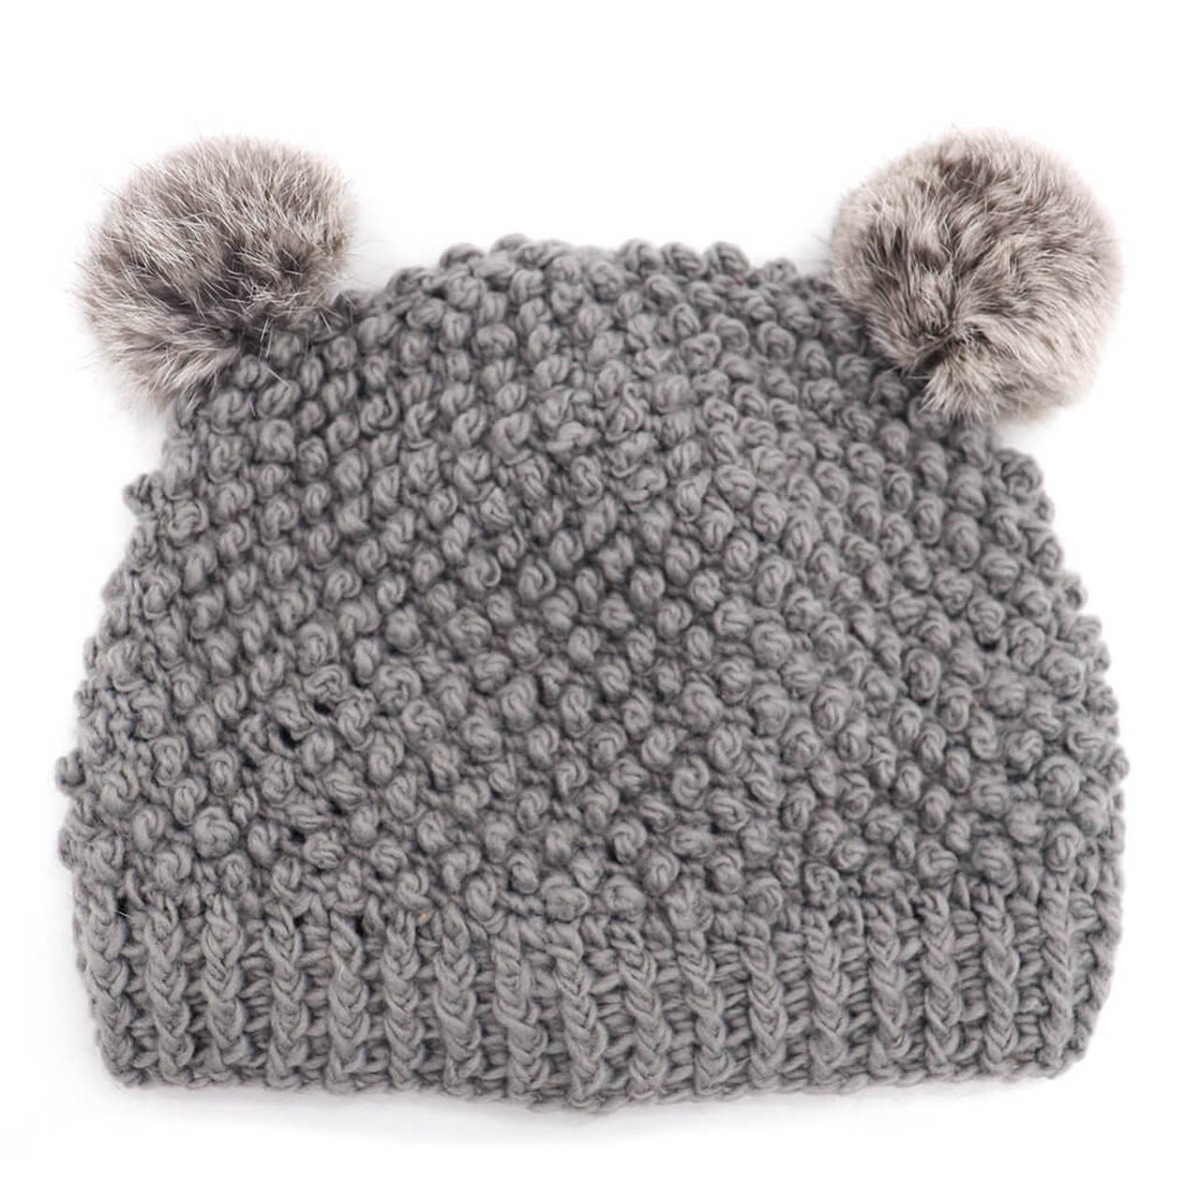 Children's Popcorn Beanie with Rabbit Fur Poms